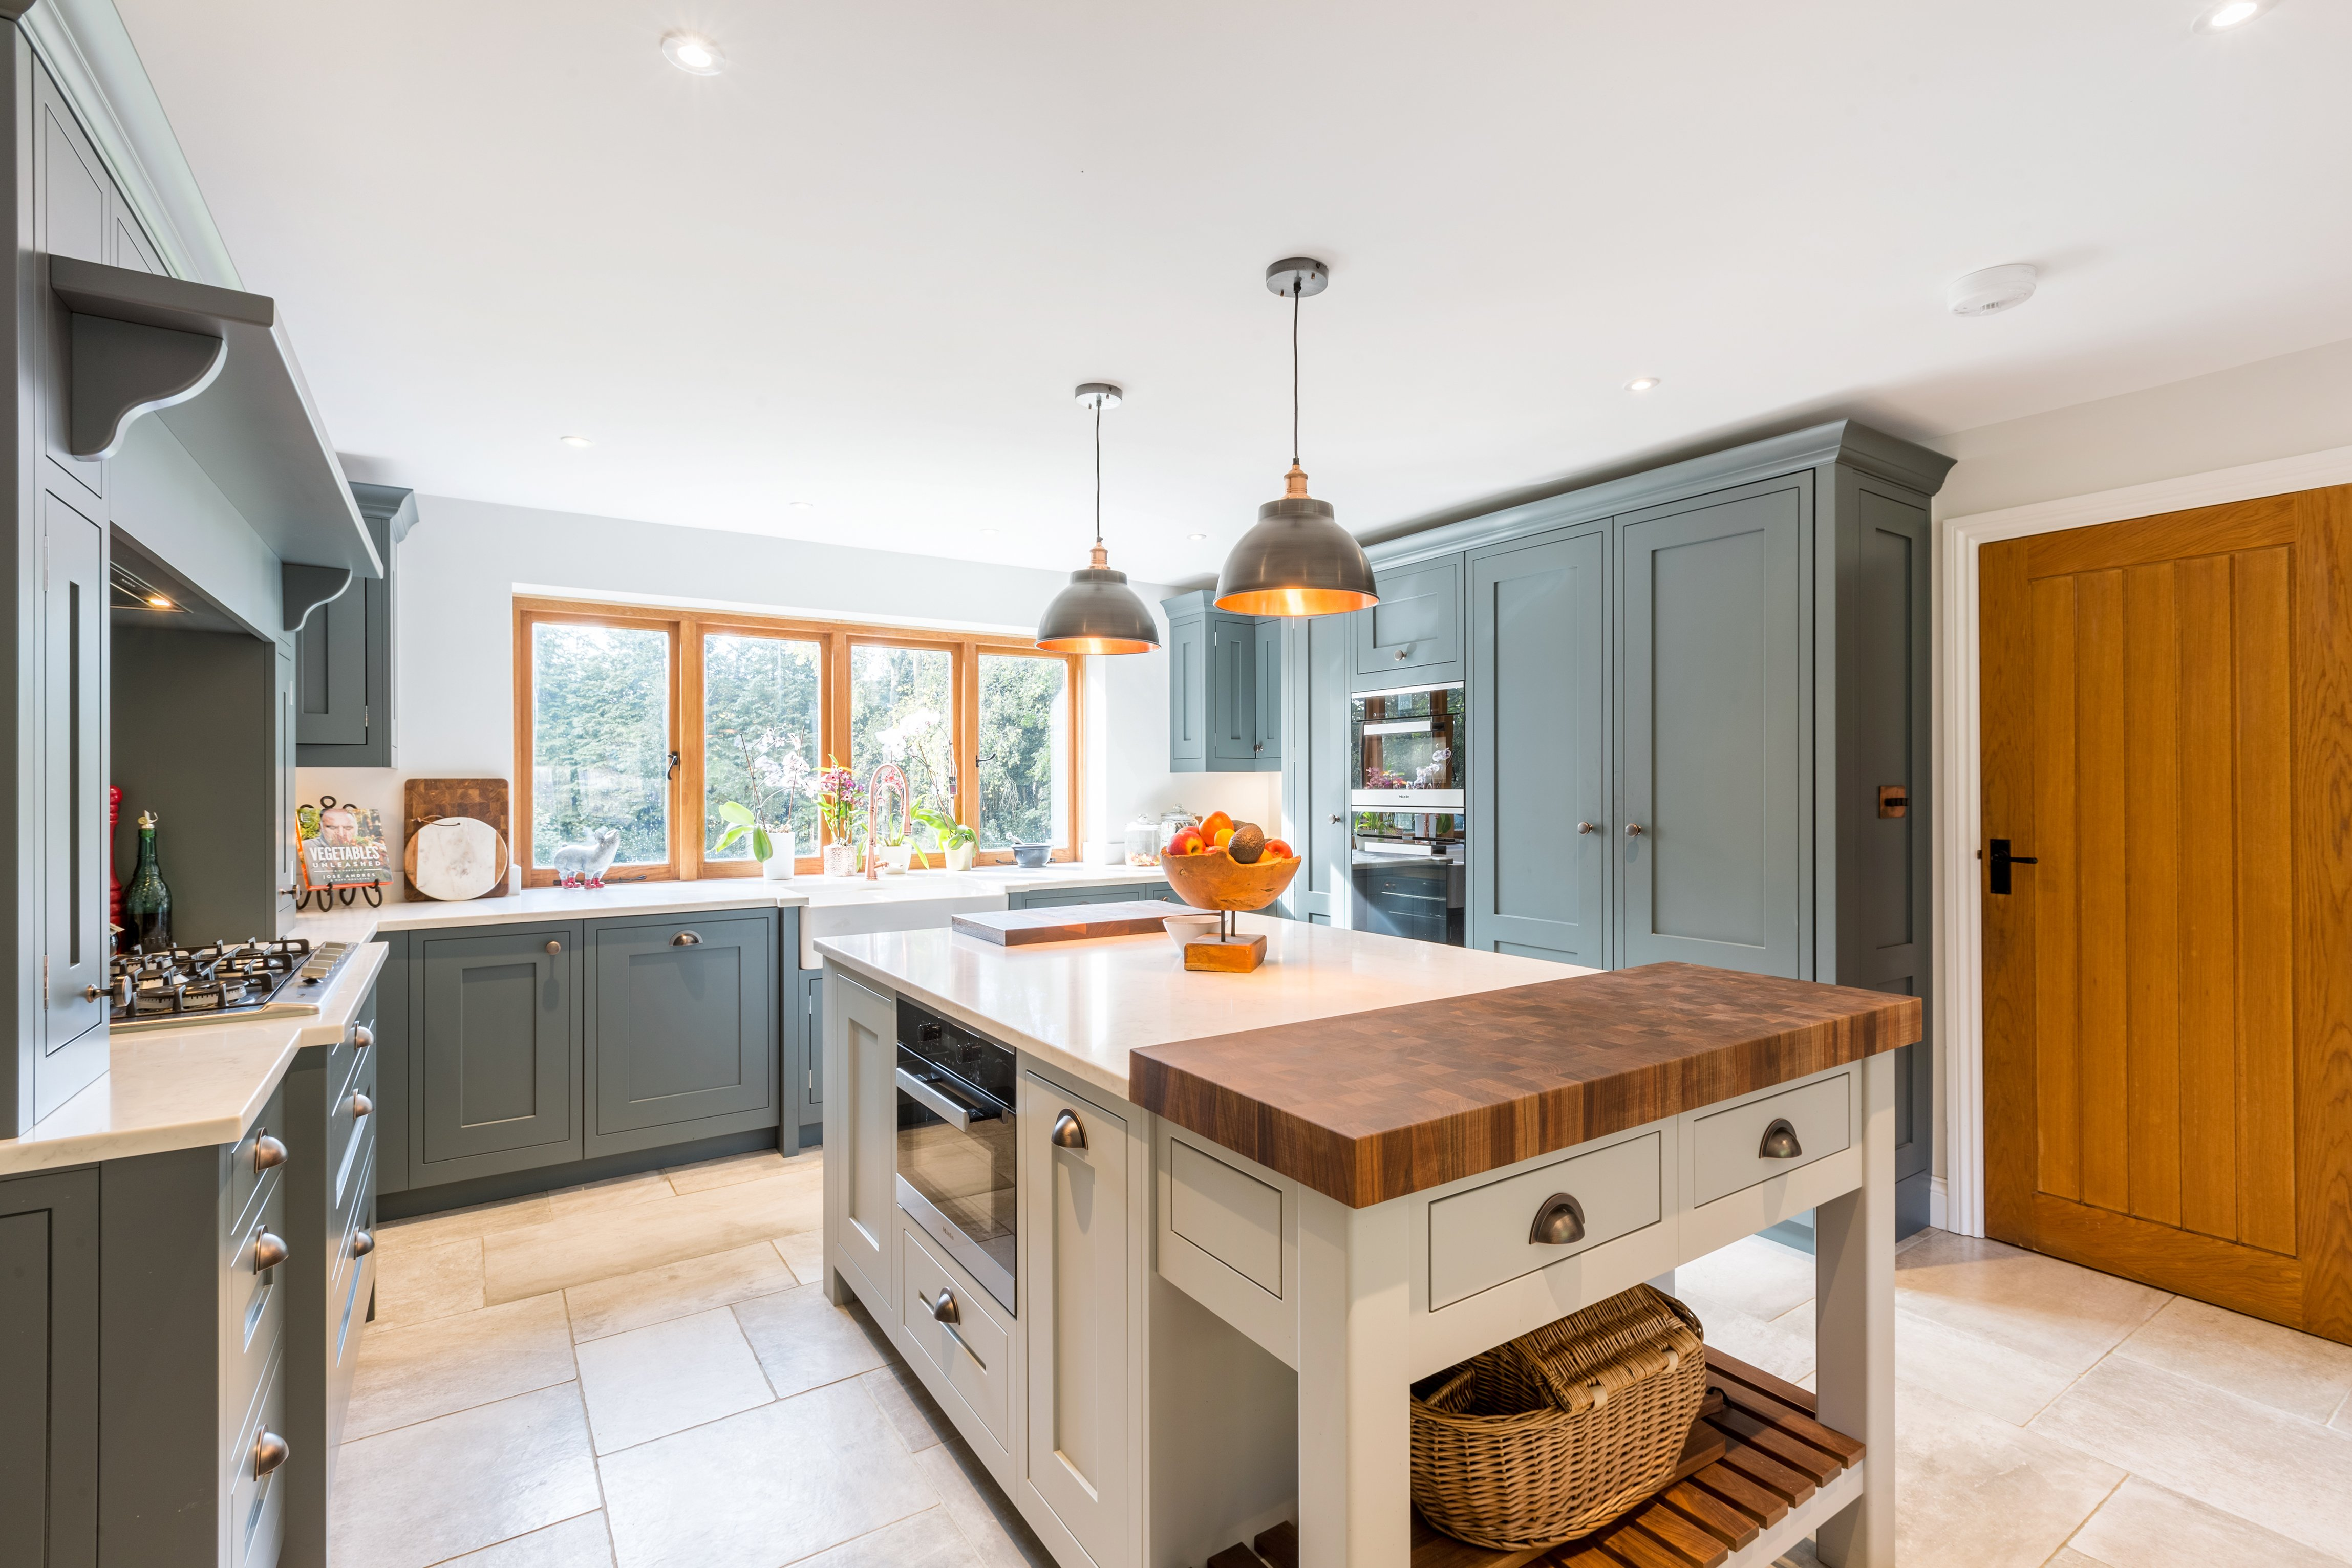 Grey shaker kitchen and utility